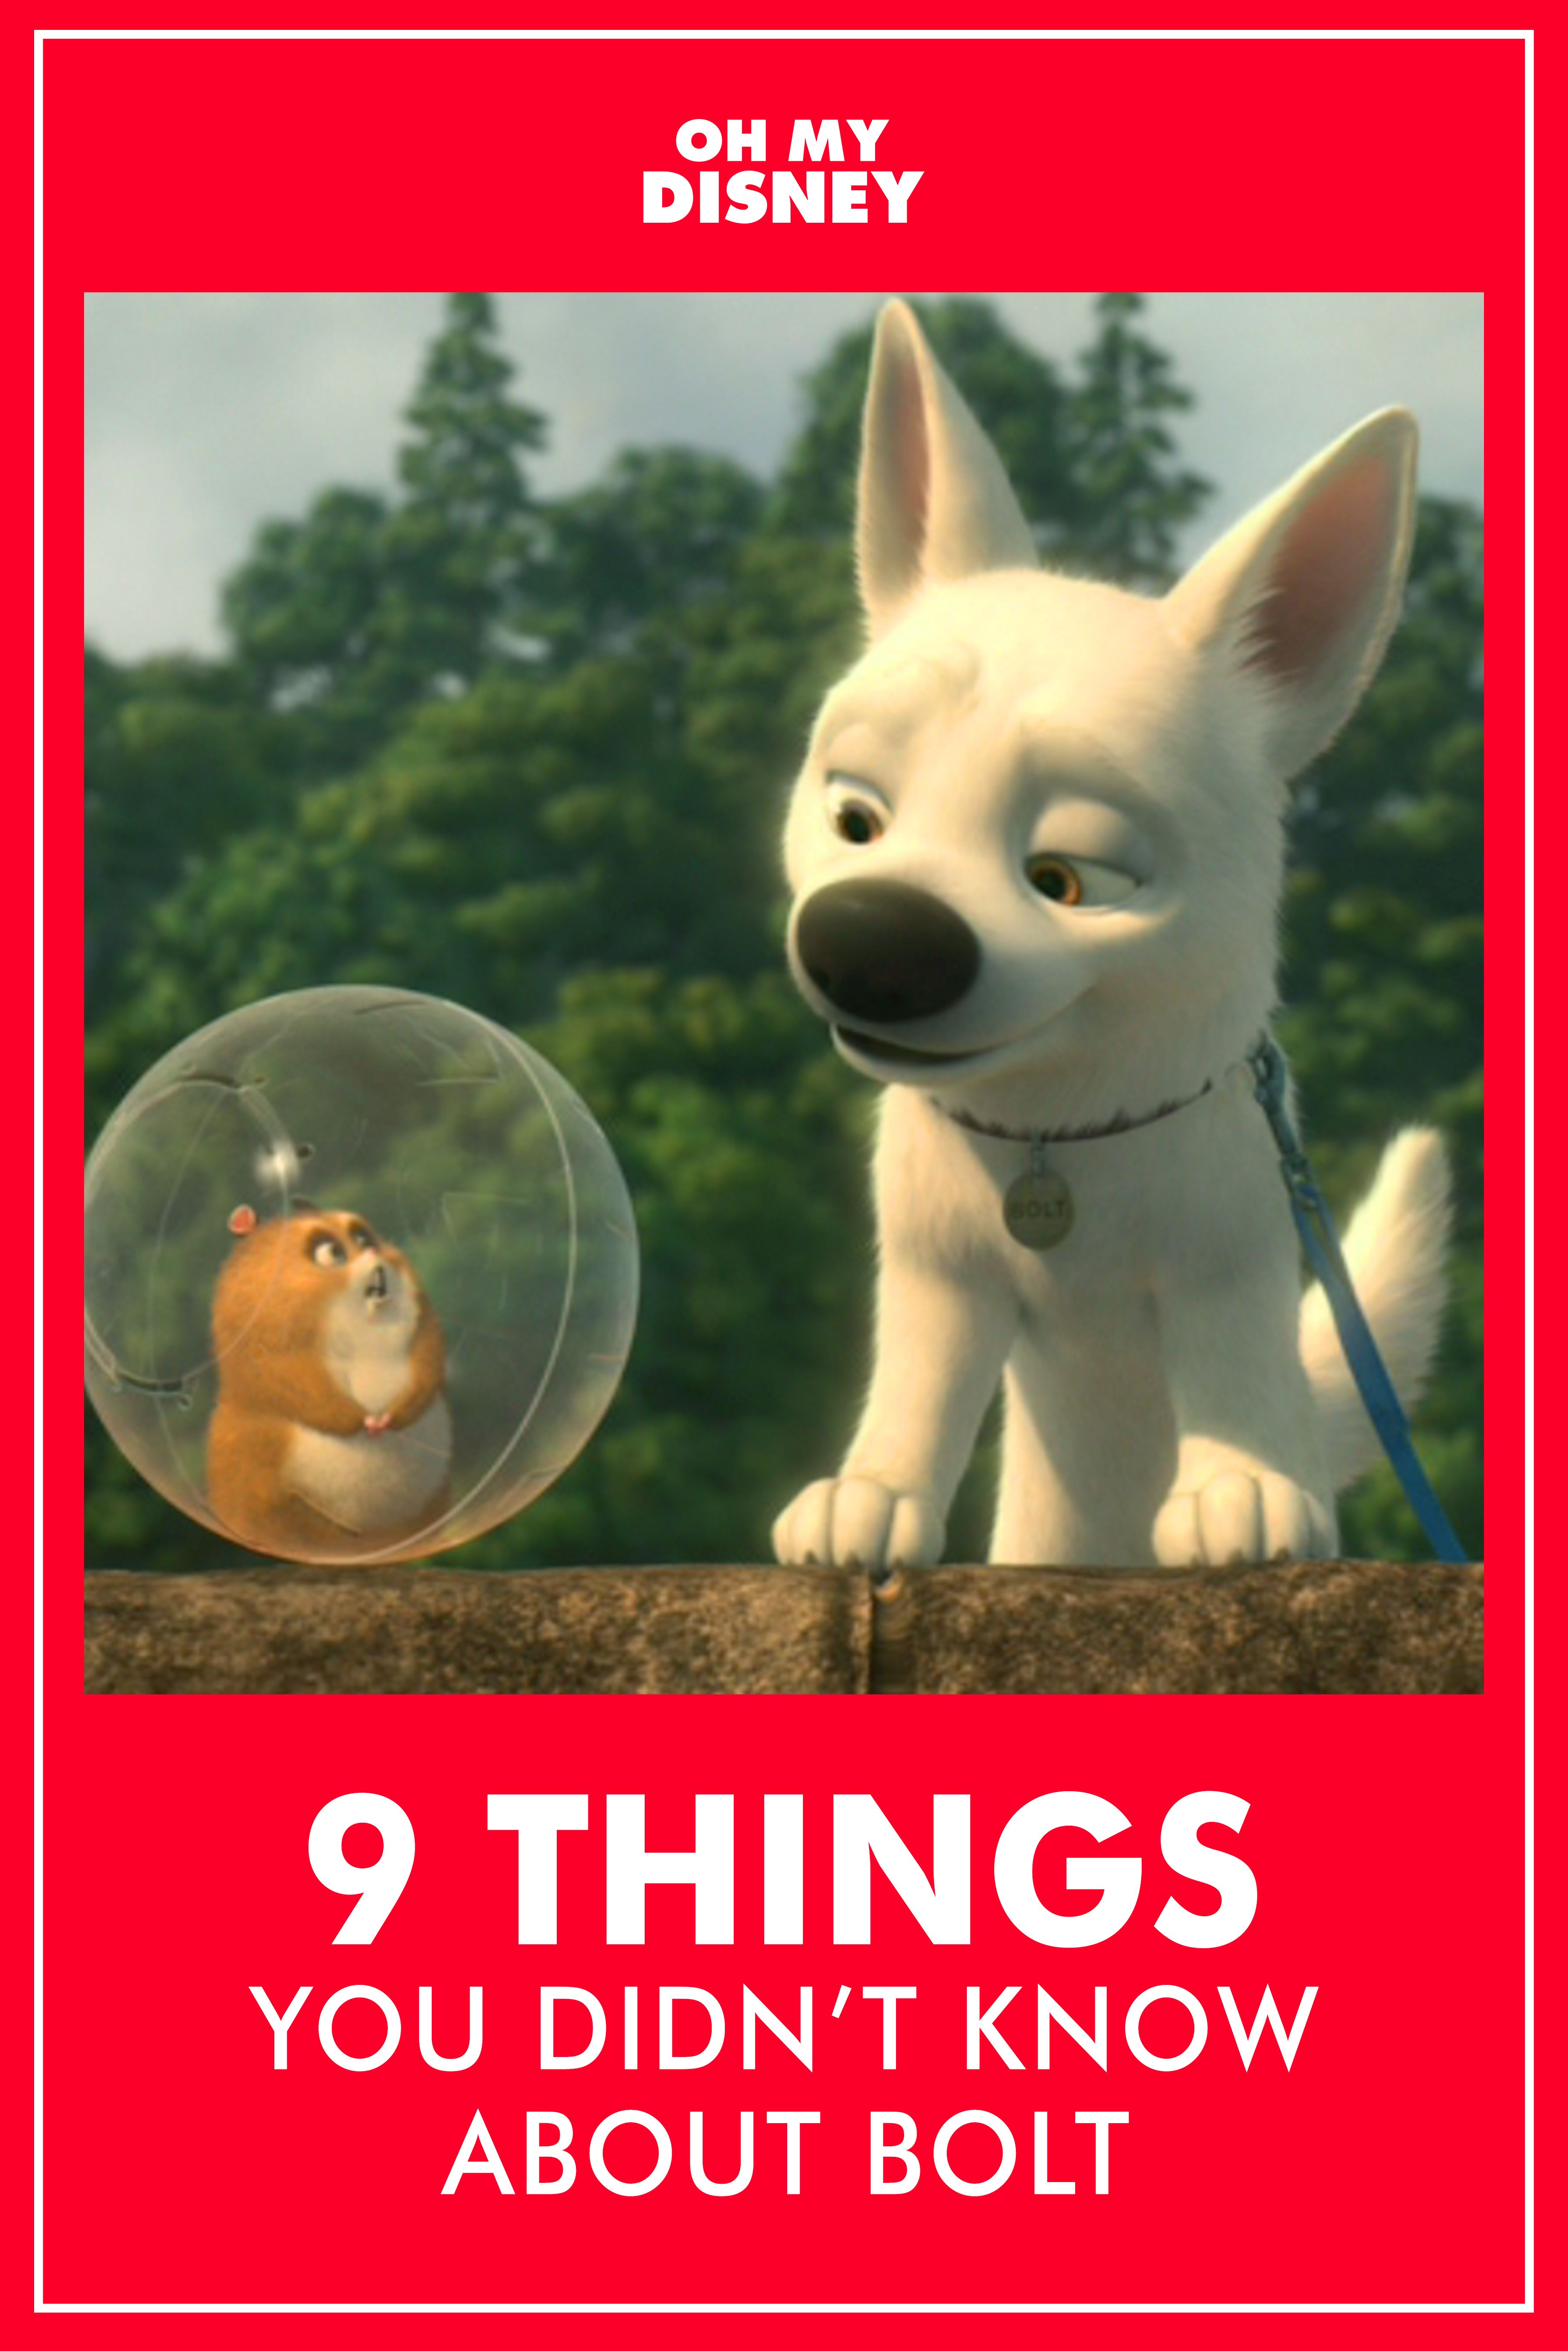 In celebration of one of our favorite Disney dogs, we've compiled a list of 9 facts you might not have known about the film. Are you ready to learn? Get ready for some Disney trivia.